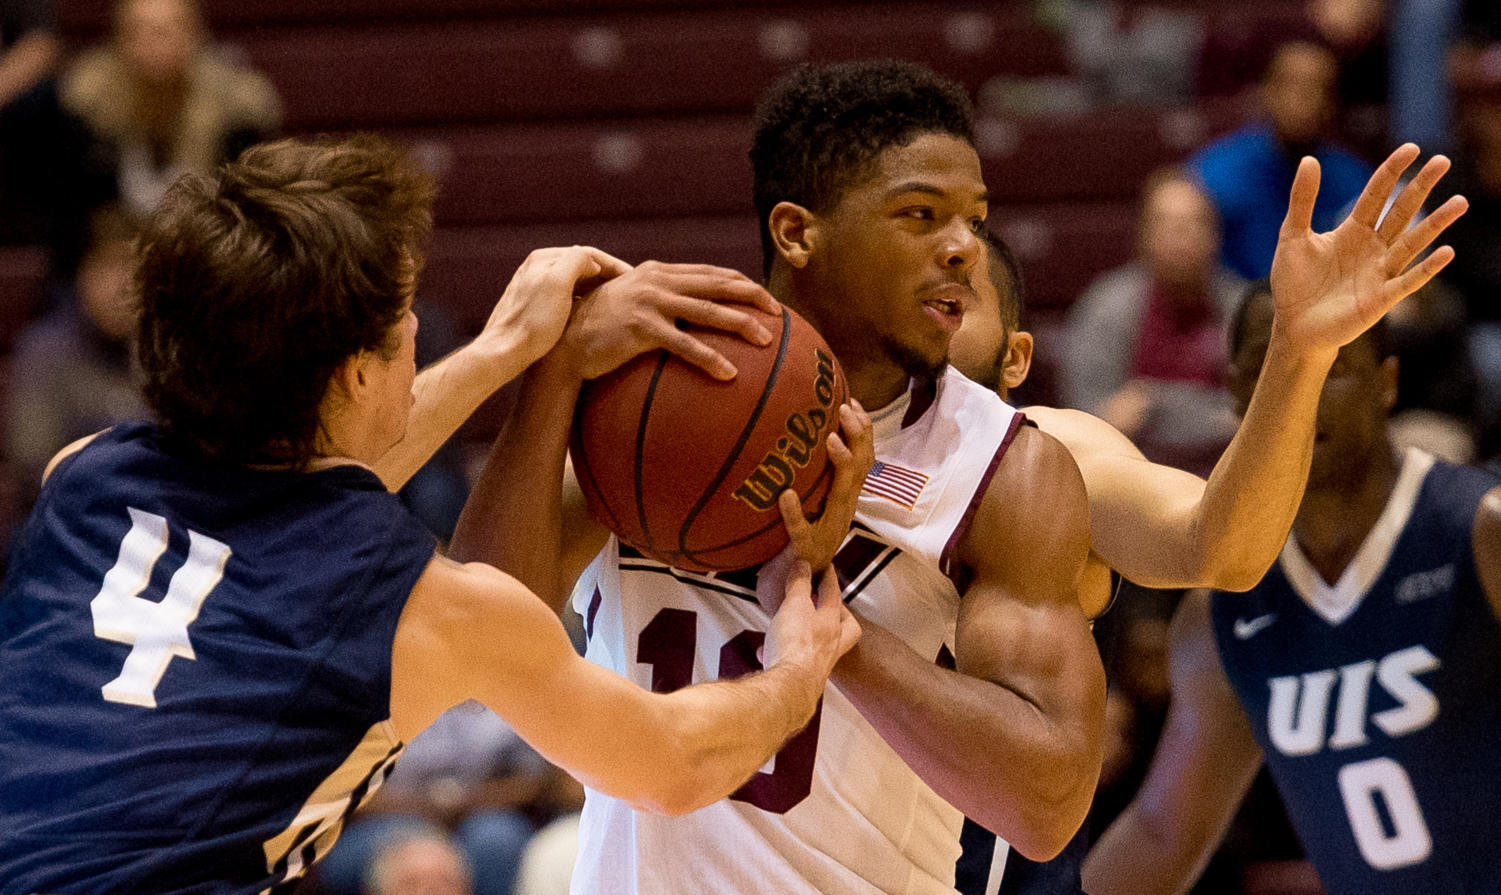 Sophomore guard Aaron Cook defends the ball Saturday, Nov. 18, 2017, during the Salukis' 69-64 win against the University of Illinois Springfield Prairie Stars at SIU Arena. (Brian Muñoz | @BrianMMunoz)